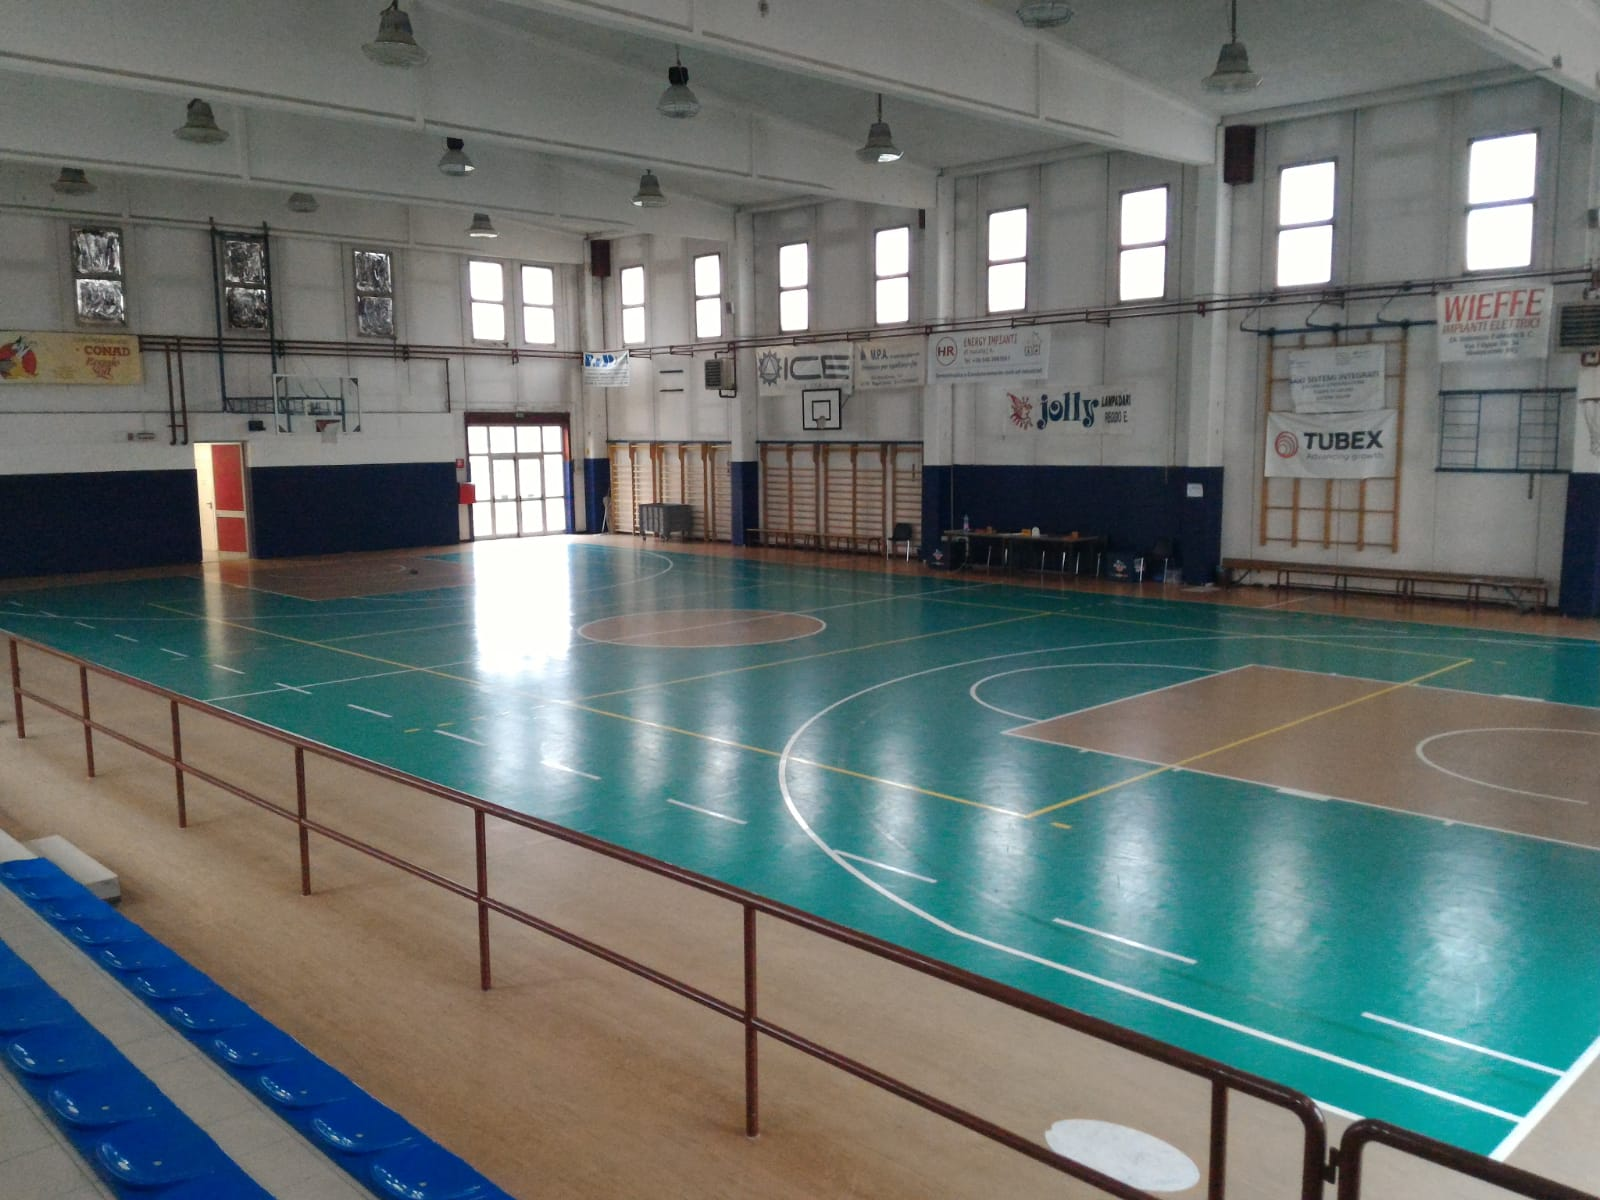 What was the flooring before the intervention of Dalla Riva Sportfloors